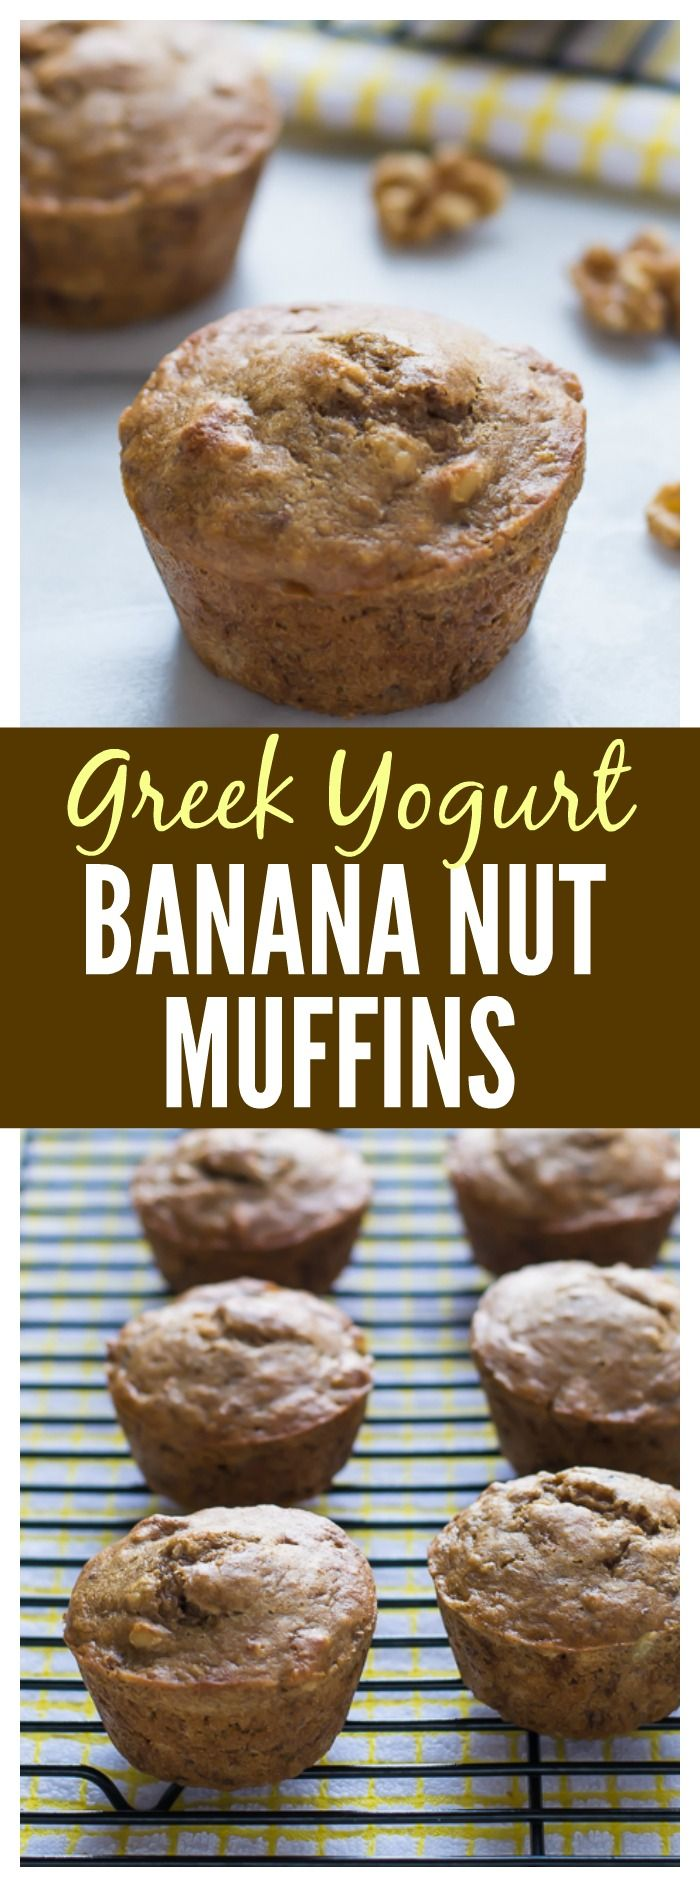 Greek Yogurt Banana Nut Muffins. Wholesome healthy banana muffins made with whole wheat flour and naturally sweetened with maple syrup. #healthybananamuffins #banananutmuffins #muffins